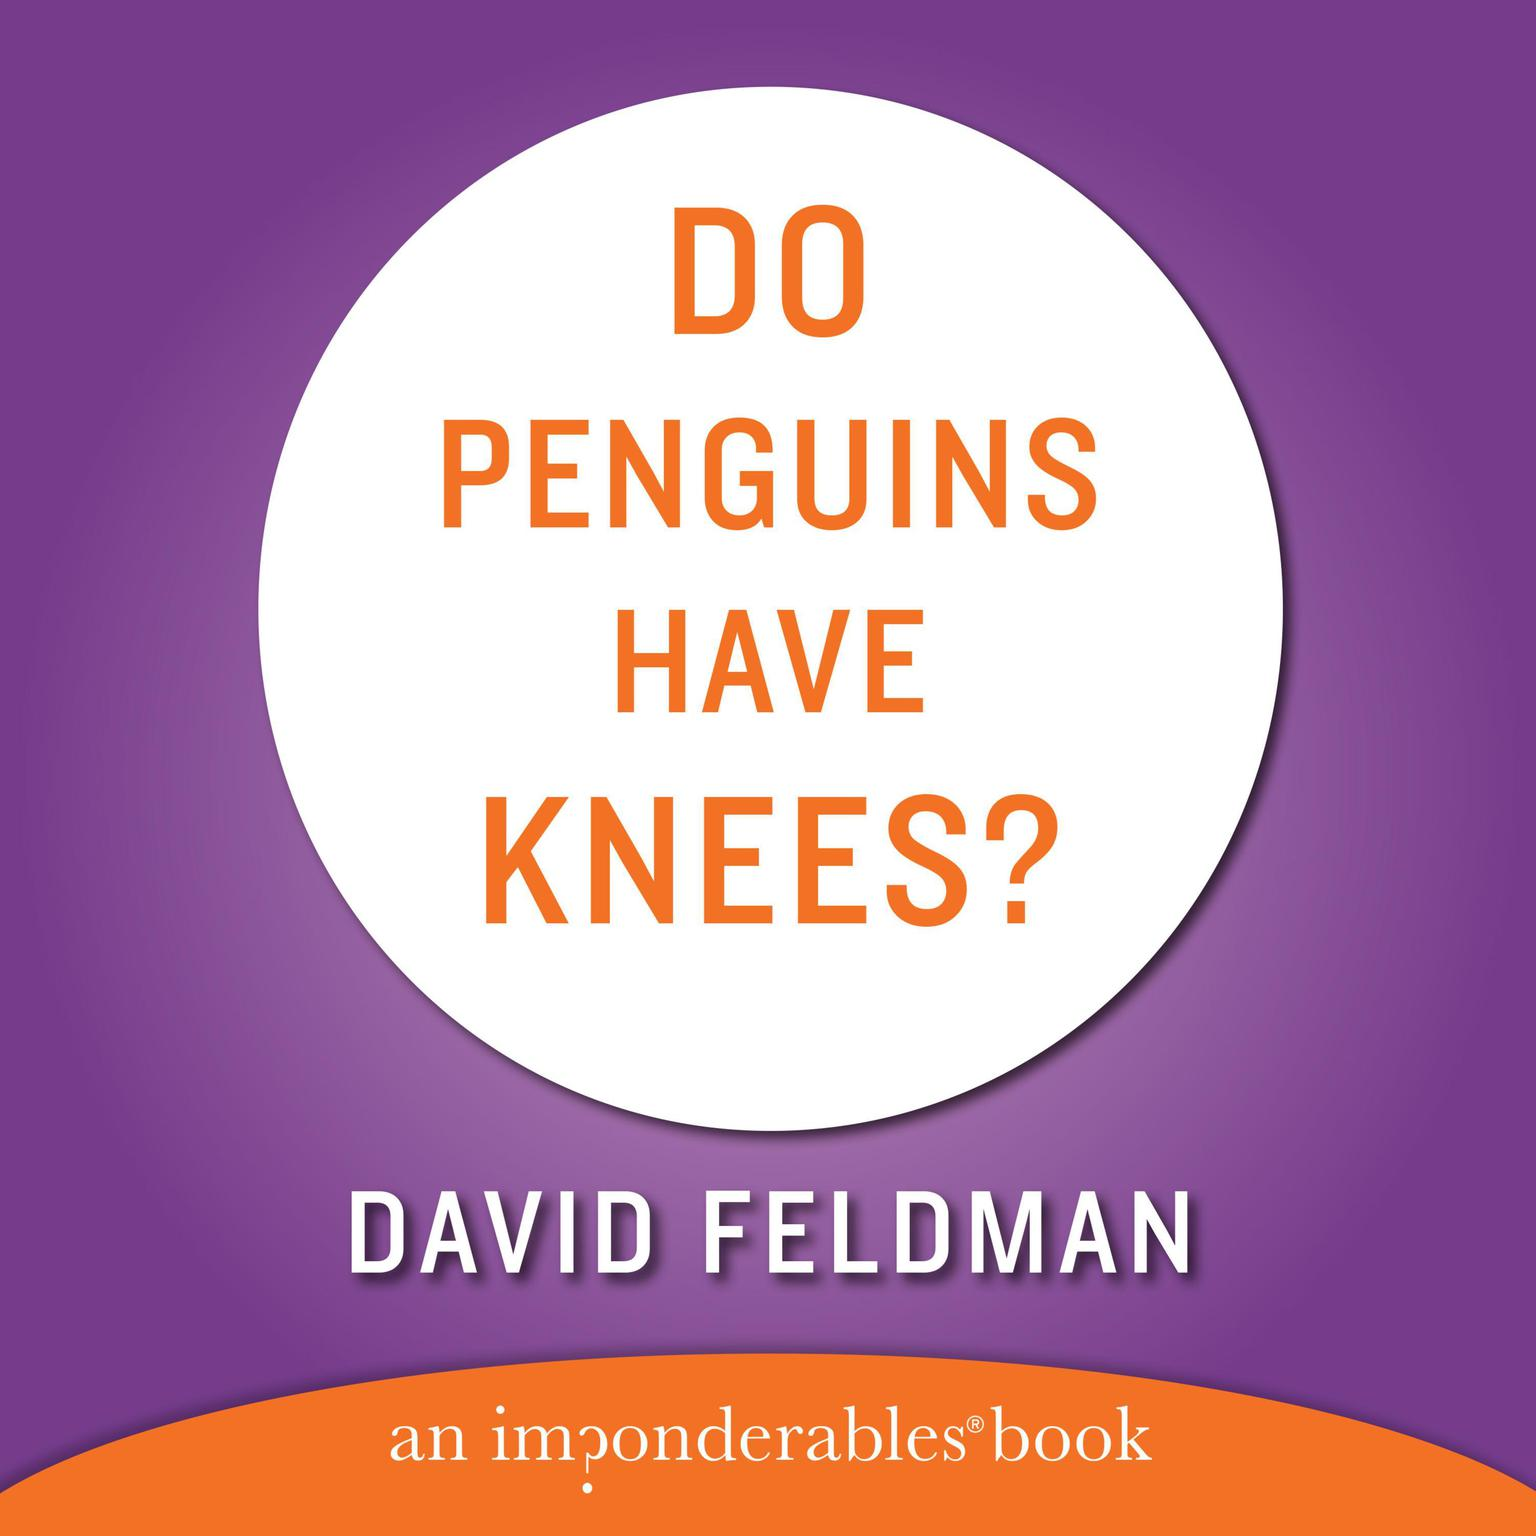 Printable DO PENGUINS HAVE KNEES? (Abridged) Audiobook Cover Art